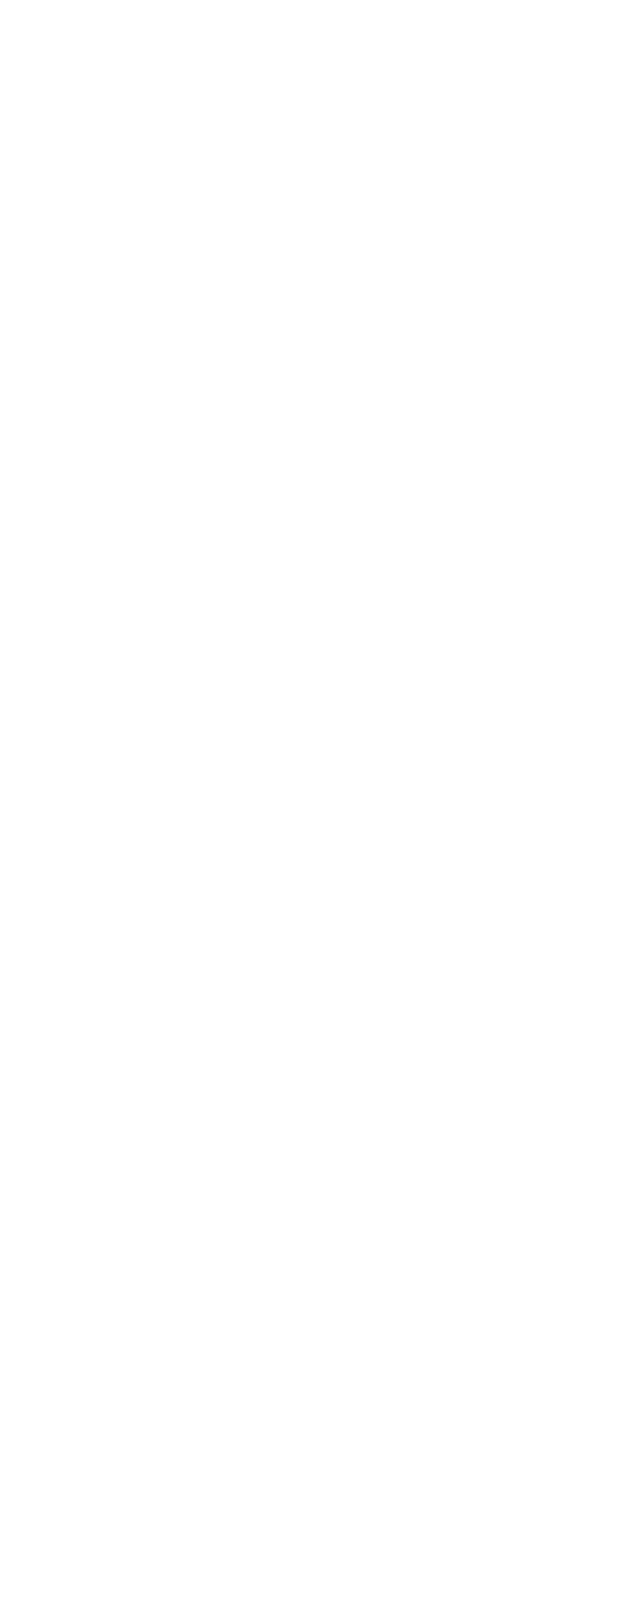 A40 Coupe Floorplan